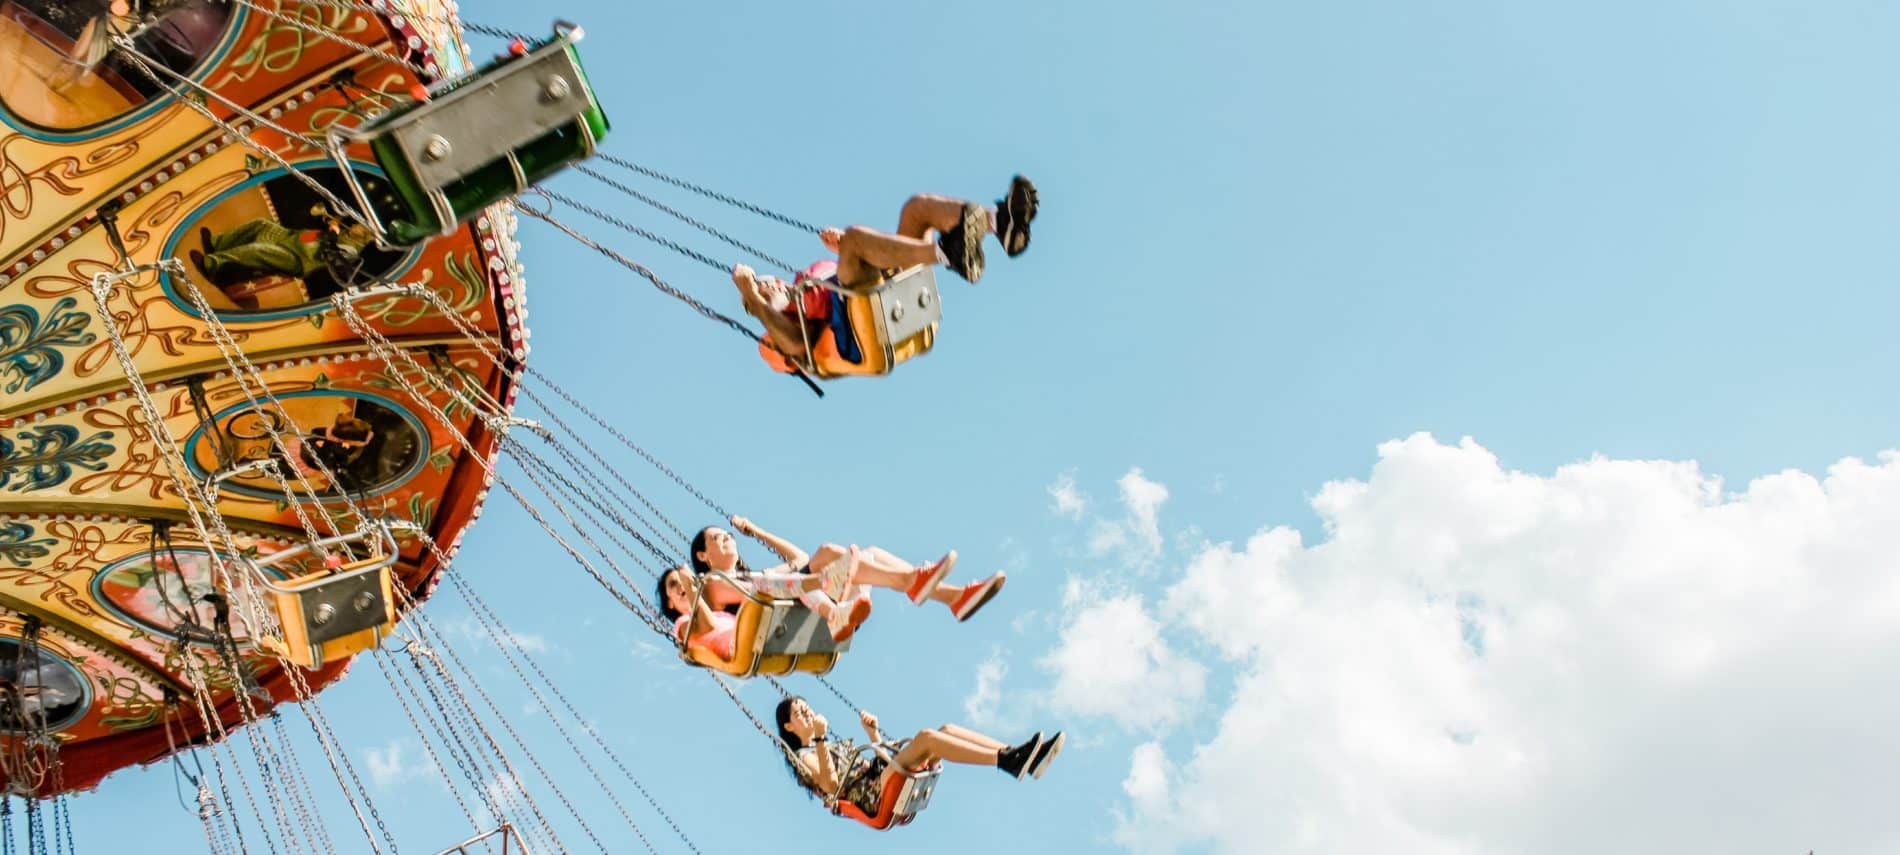 children on an amusement park swing ride